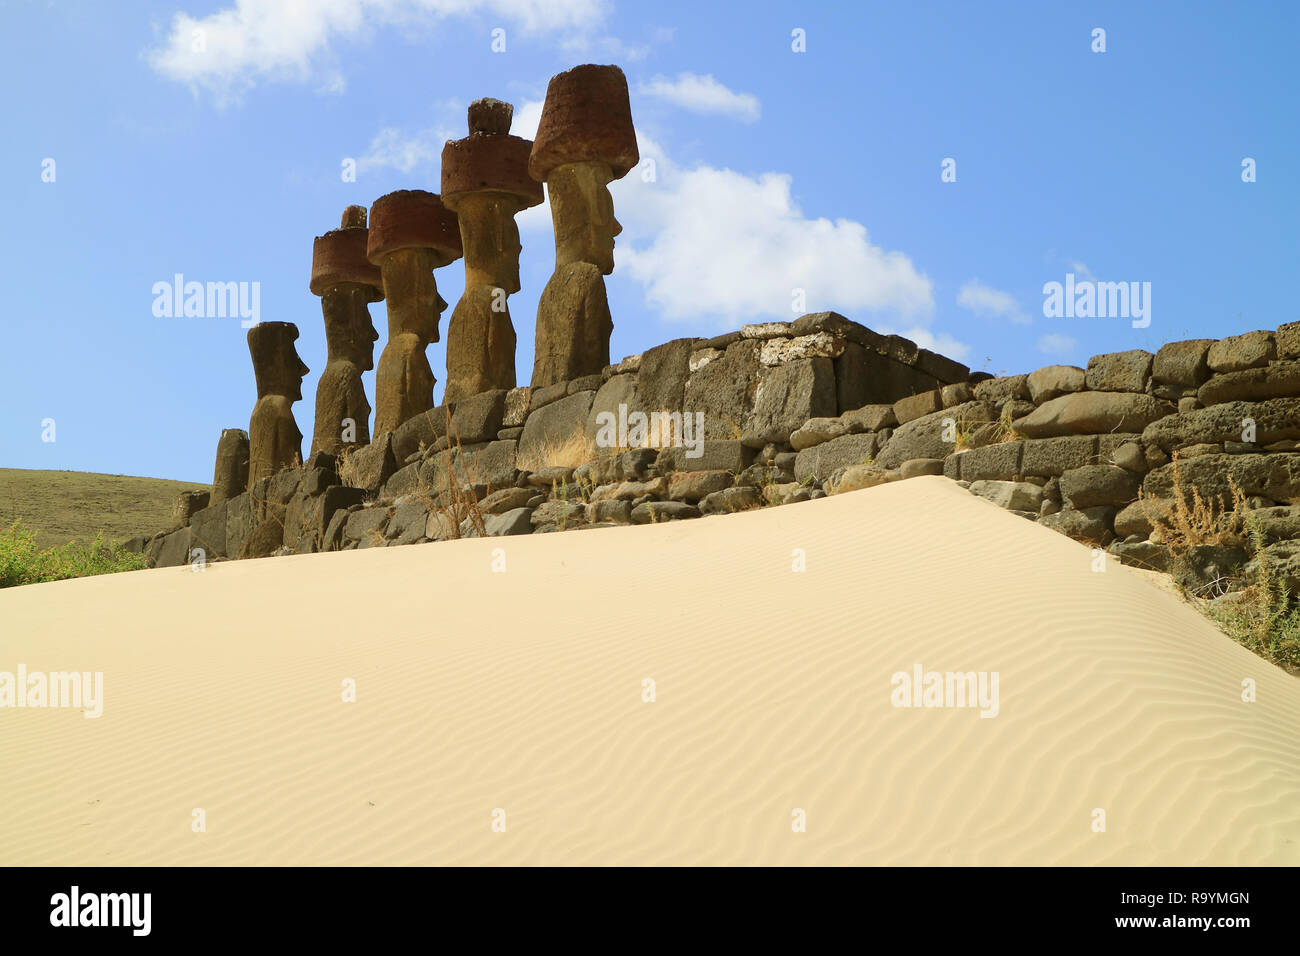 Seven gigantic Moai statues of Ahu Nau Nau ceremonial platform surrounded by soft coral sand of Anakena beach, Easter island, Chile - Stock Image